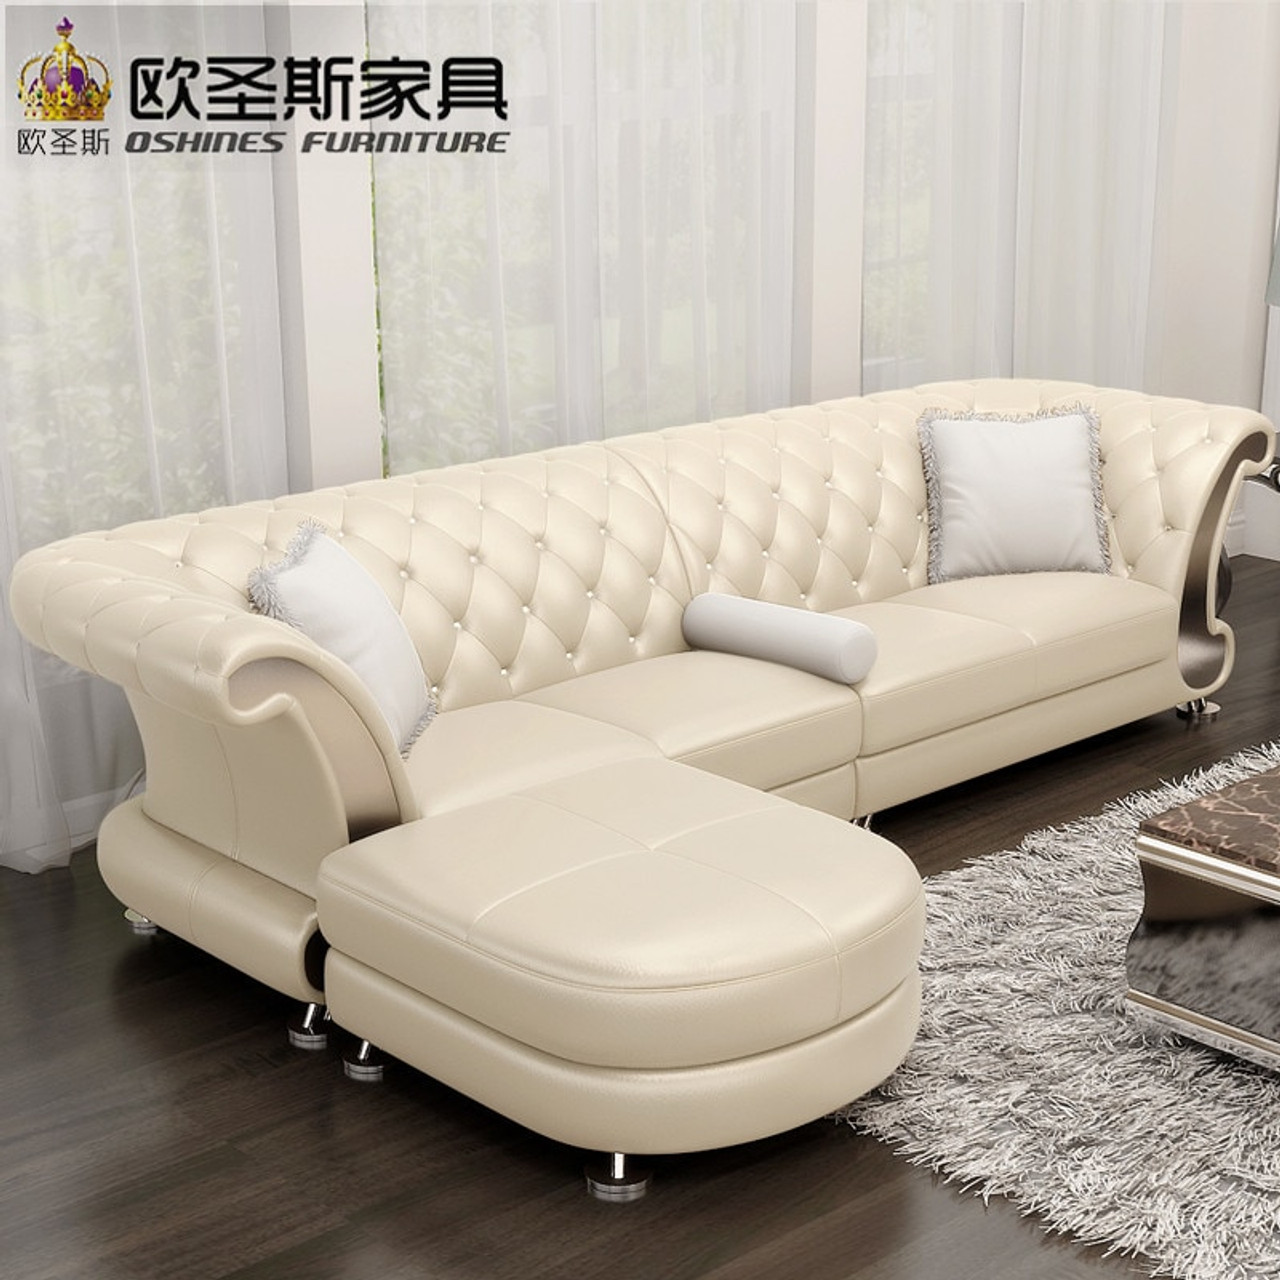 عادة التحام خيبة الامل Latest Sofa Designs Findlocal Drivewayrepair Com